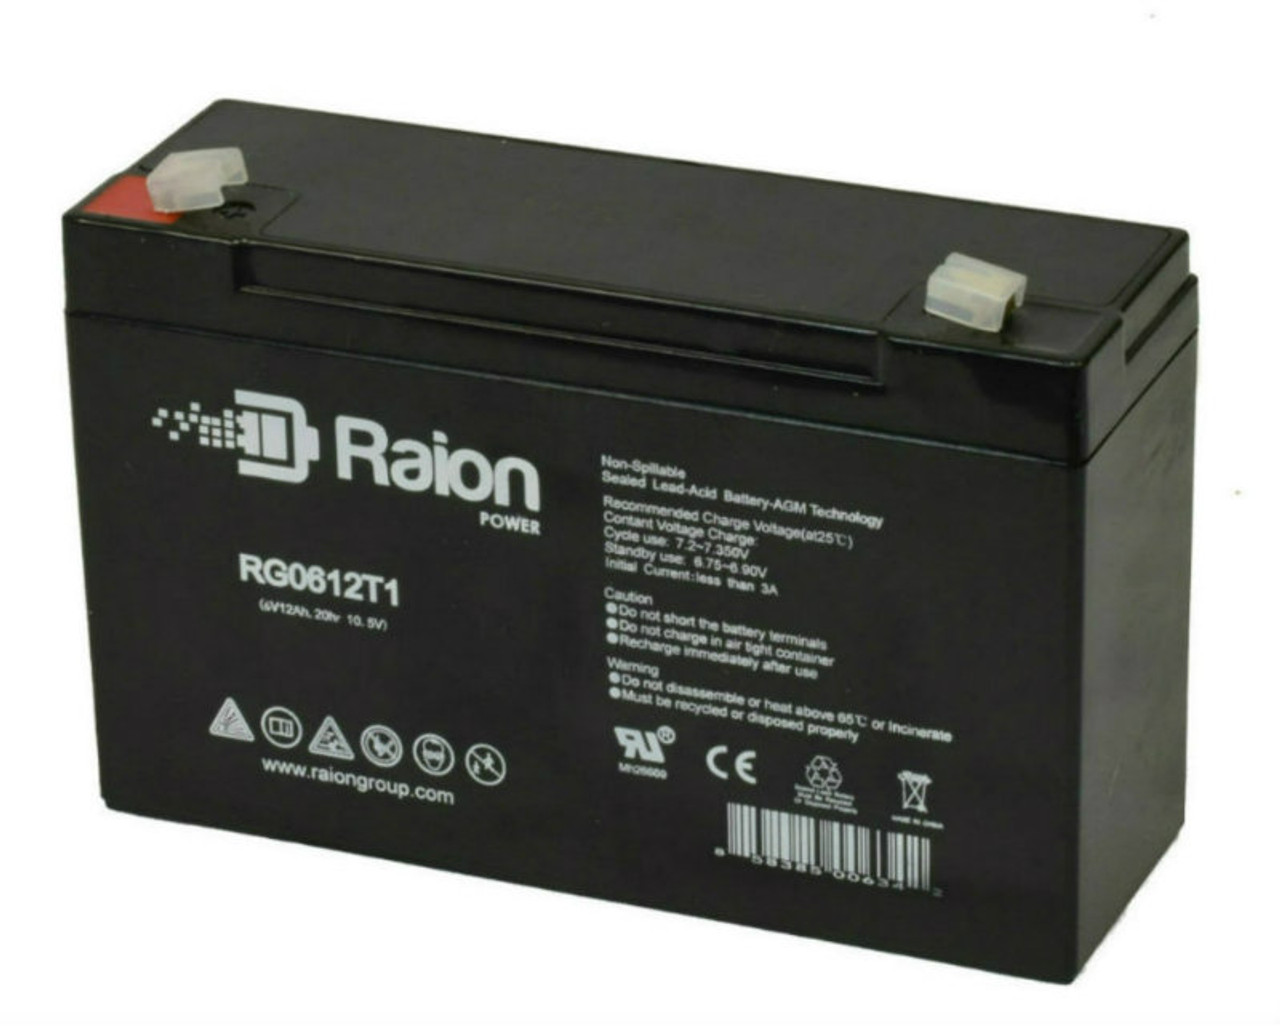 Raion Power RG06120T1 Replacement Battery Pack for Edwards 1632 emergency light